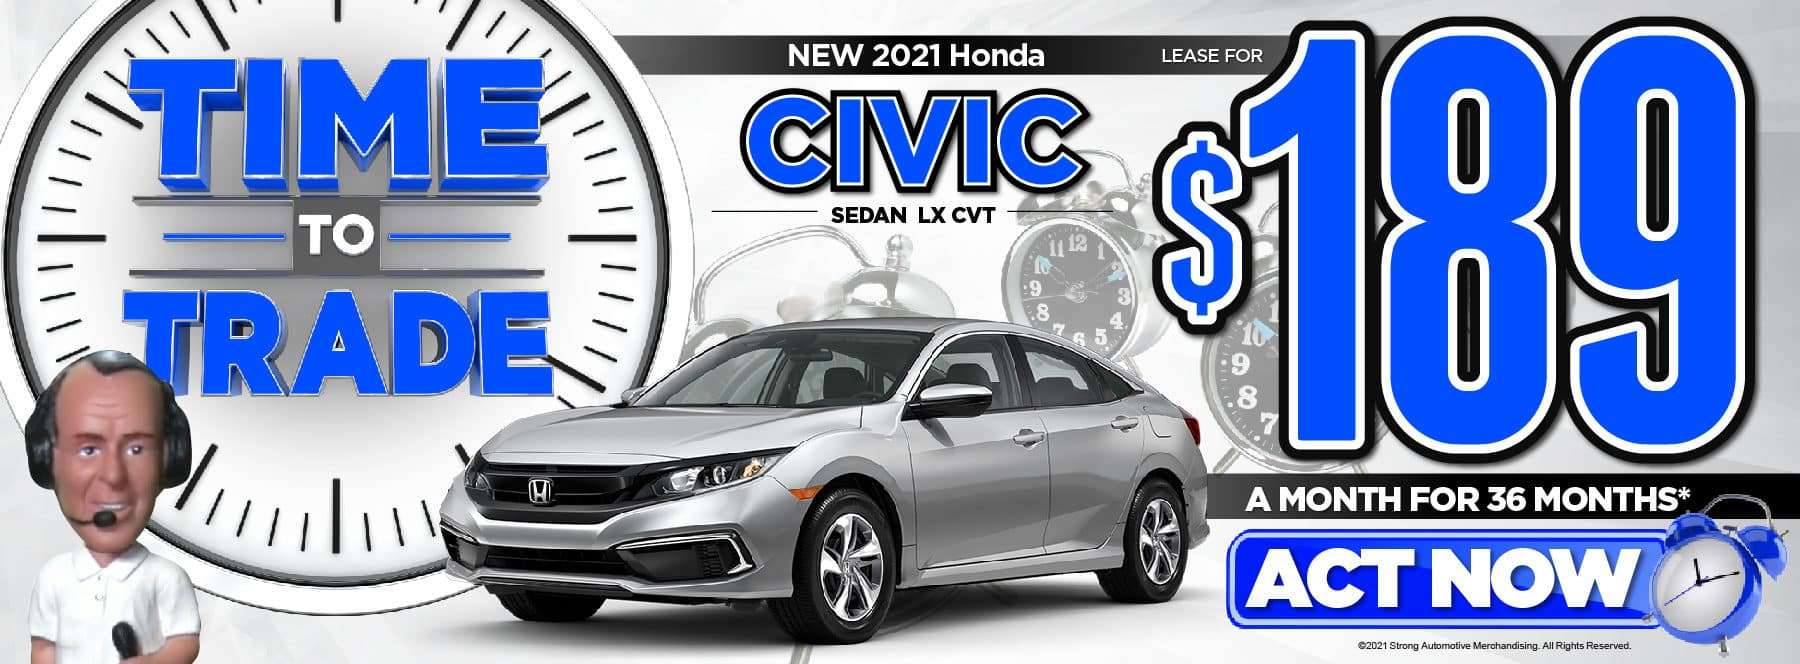 New 2021 Honda Civic LX Lease for $189/Mo* Act Now